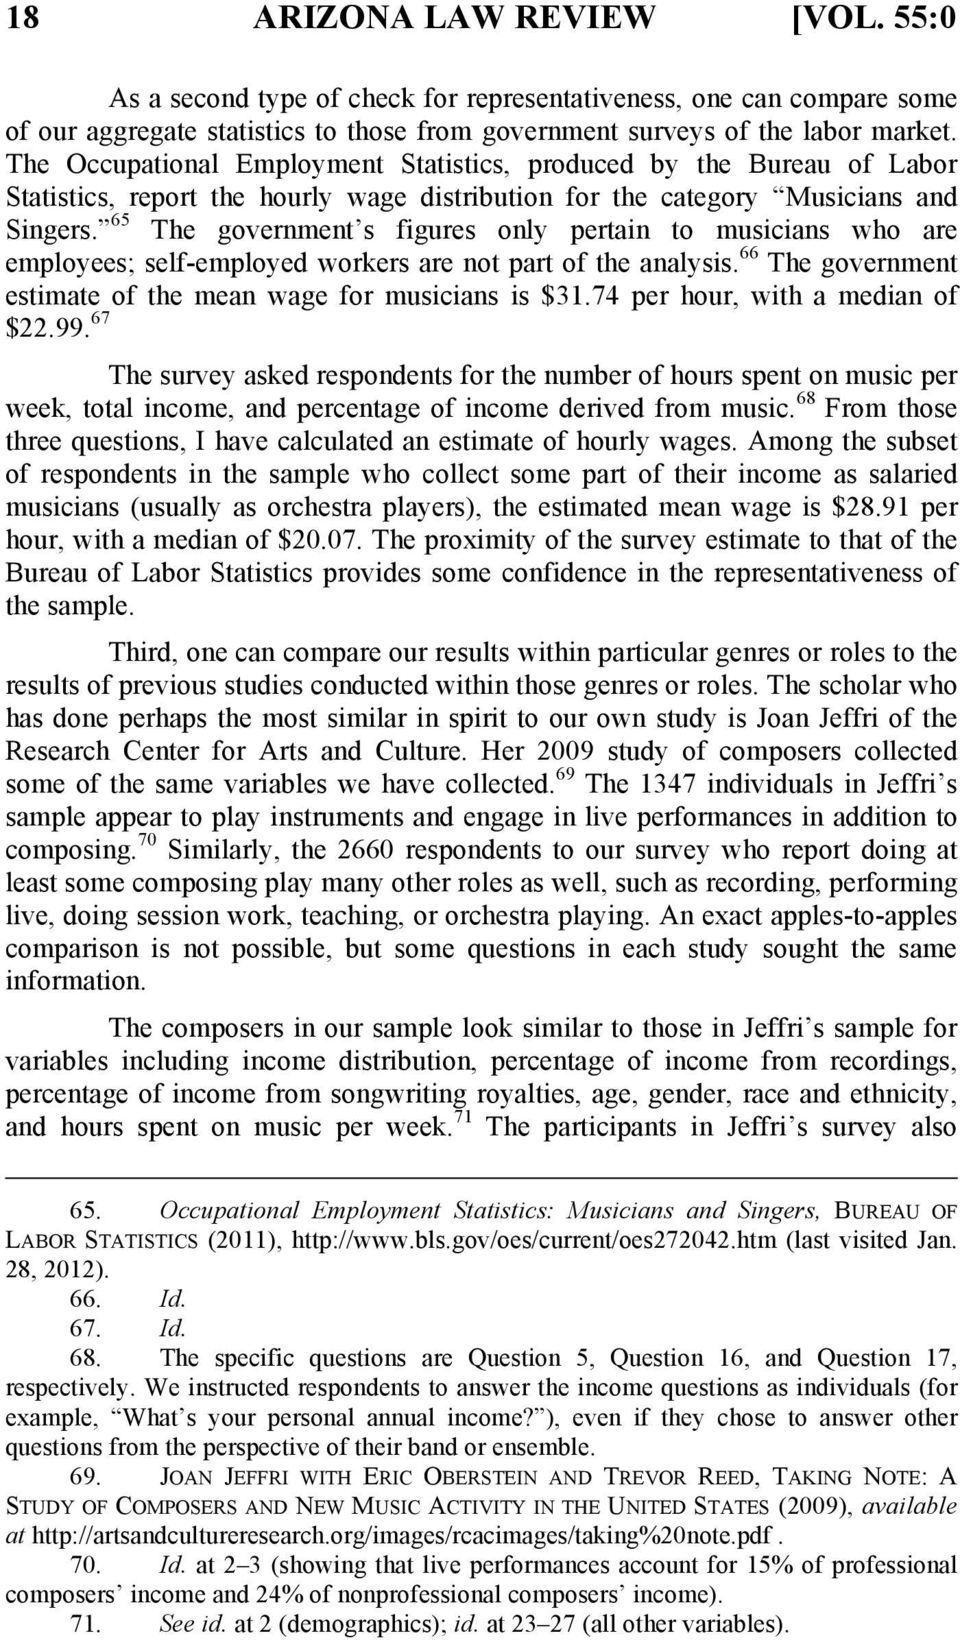 65 The government s figures only pertain to musicians who are employees; self-employed workers are not part of the analysis. 66 The government estimate of the mean wage for musicians is $31.